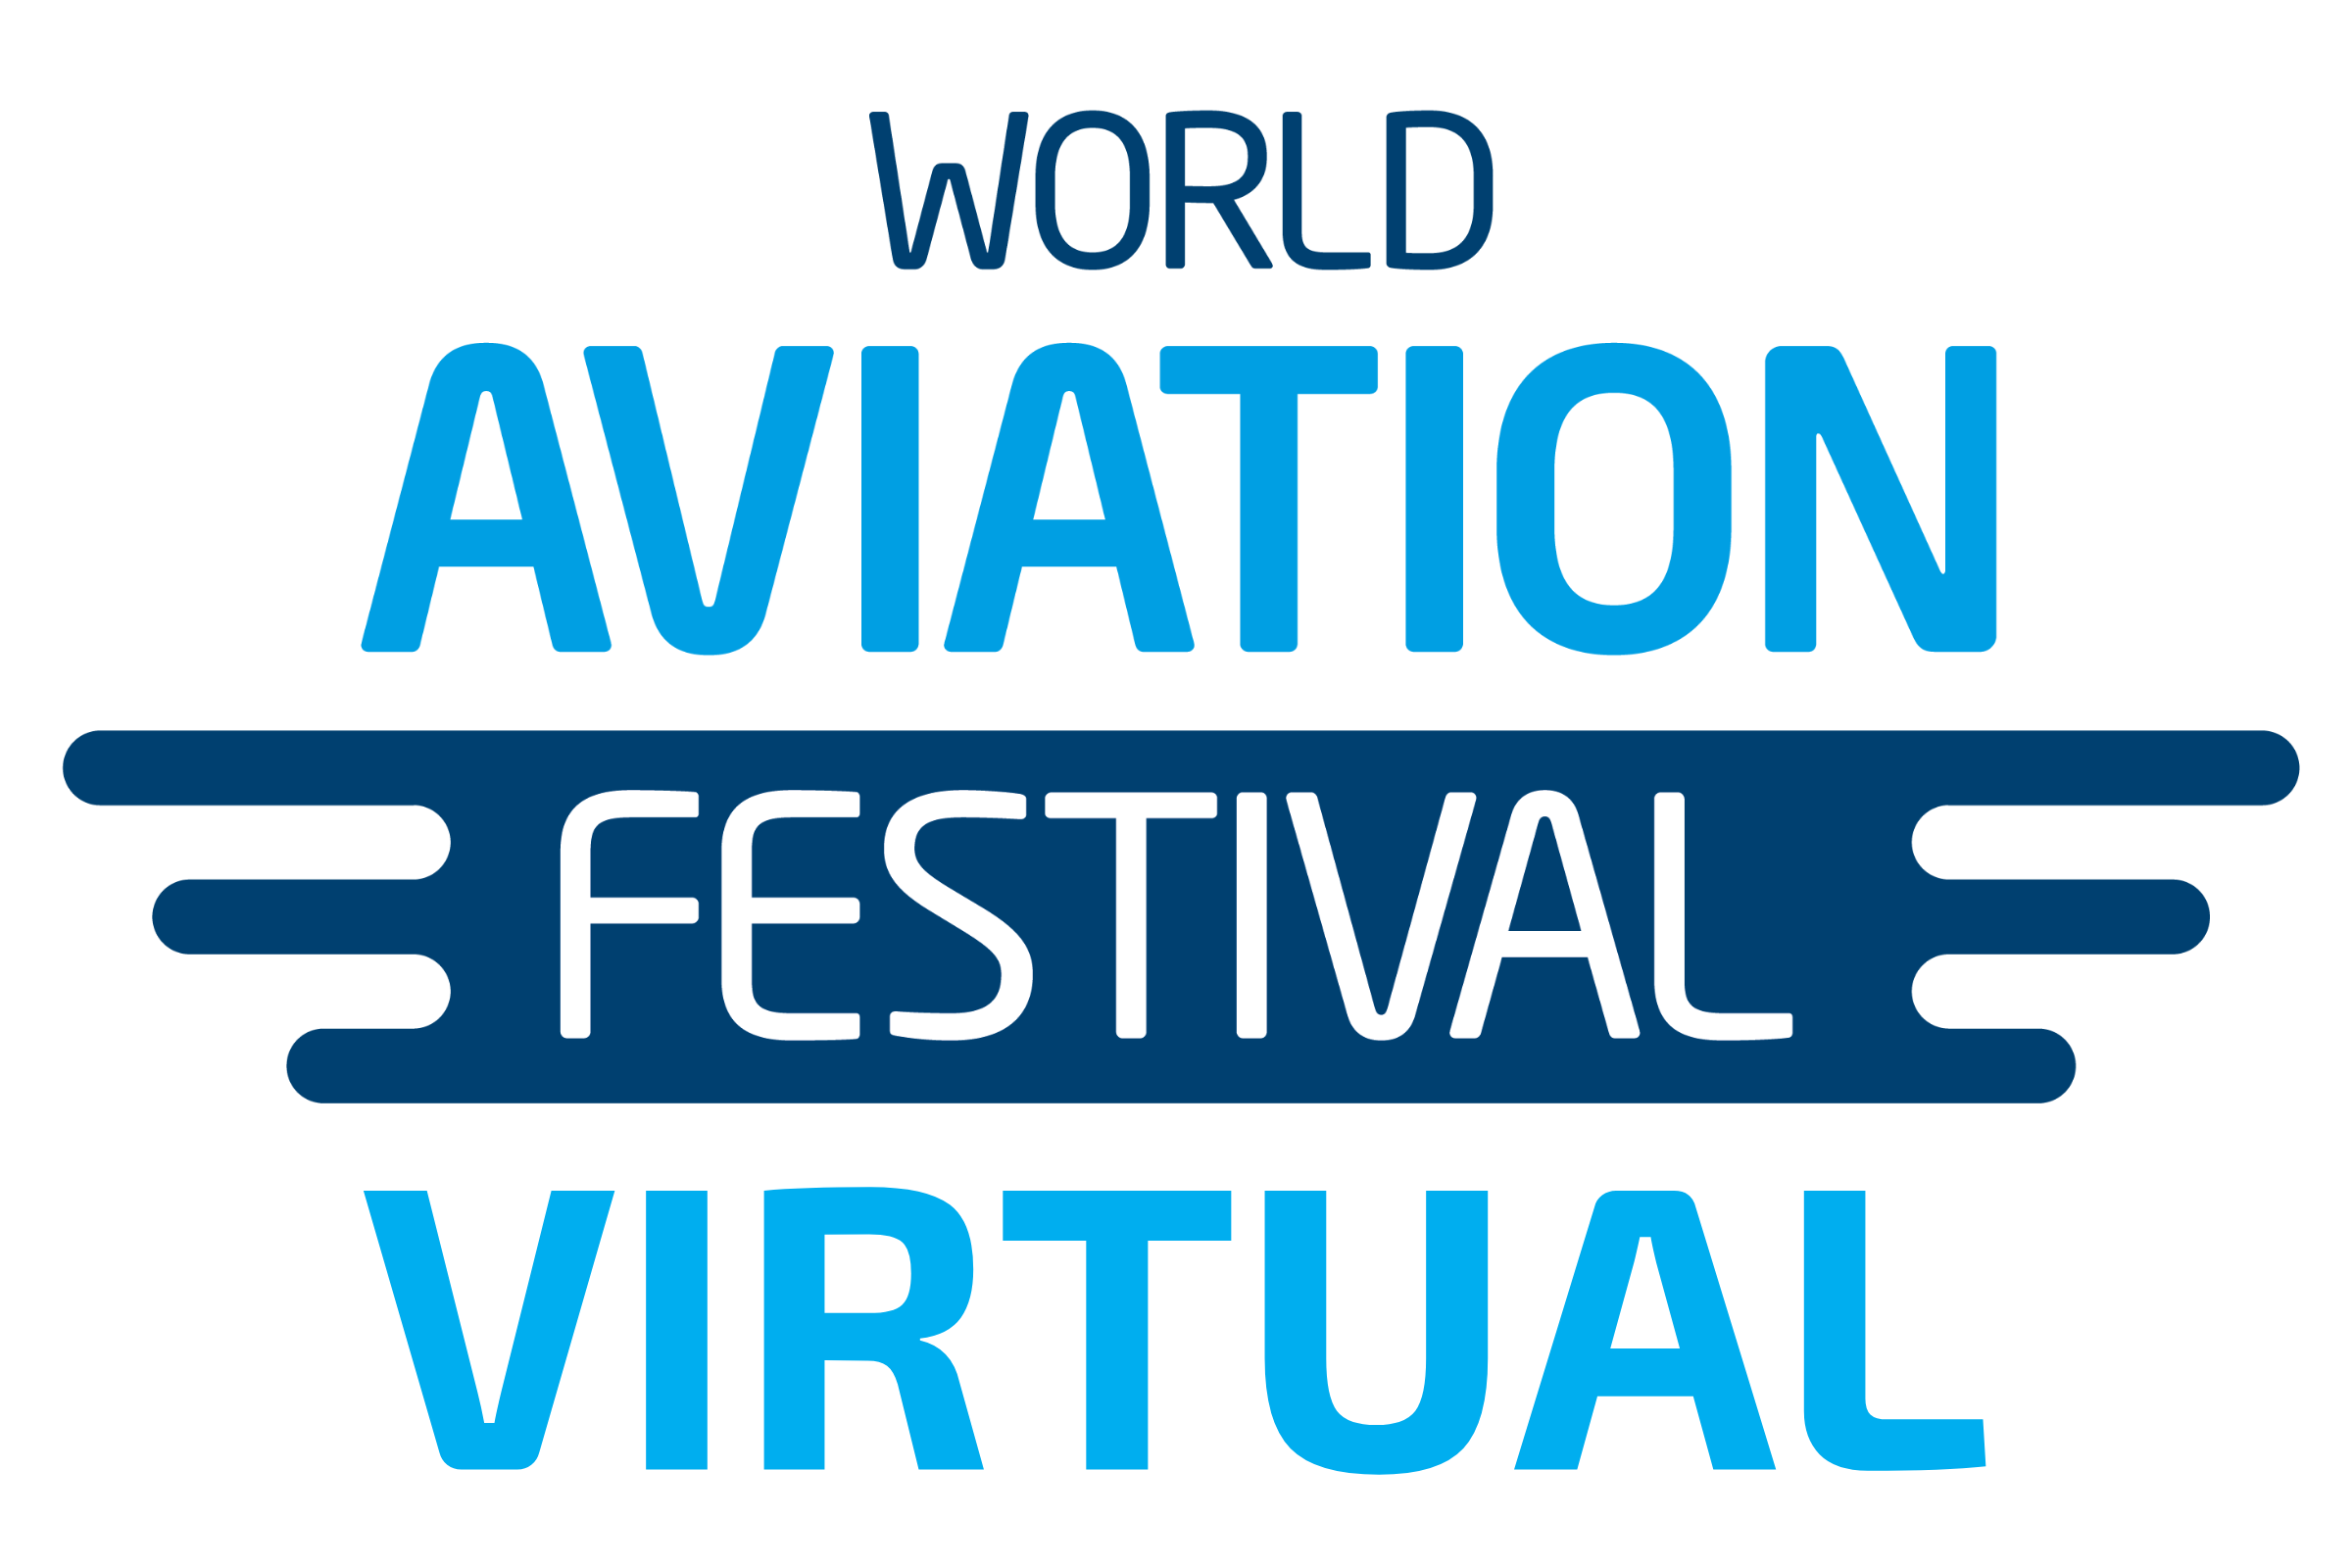 World Aviation Festival Virtual